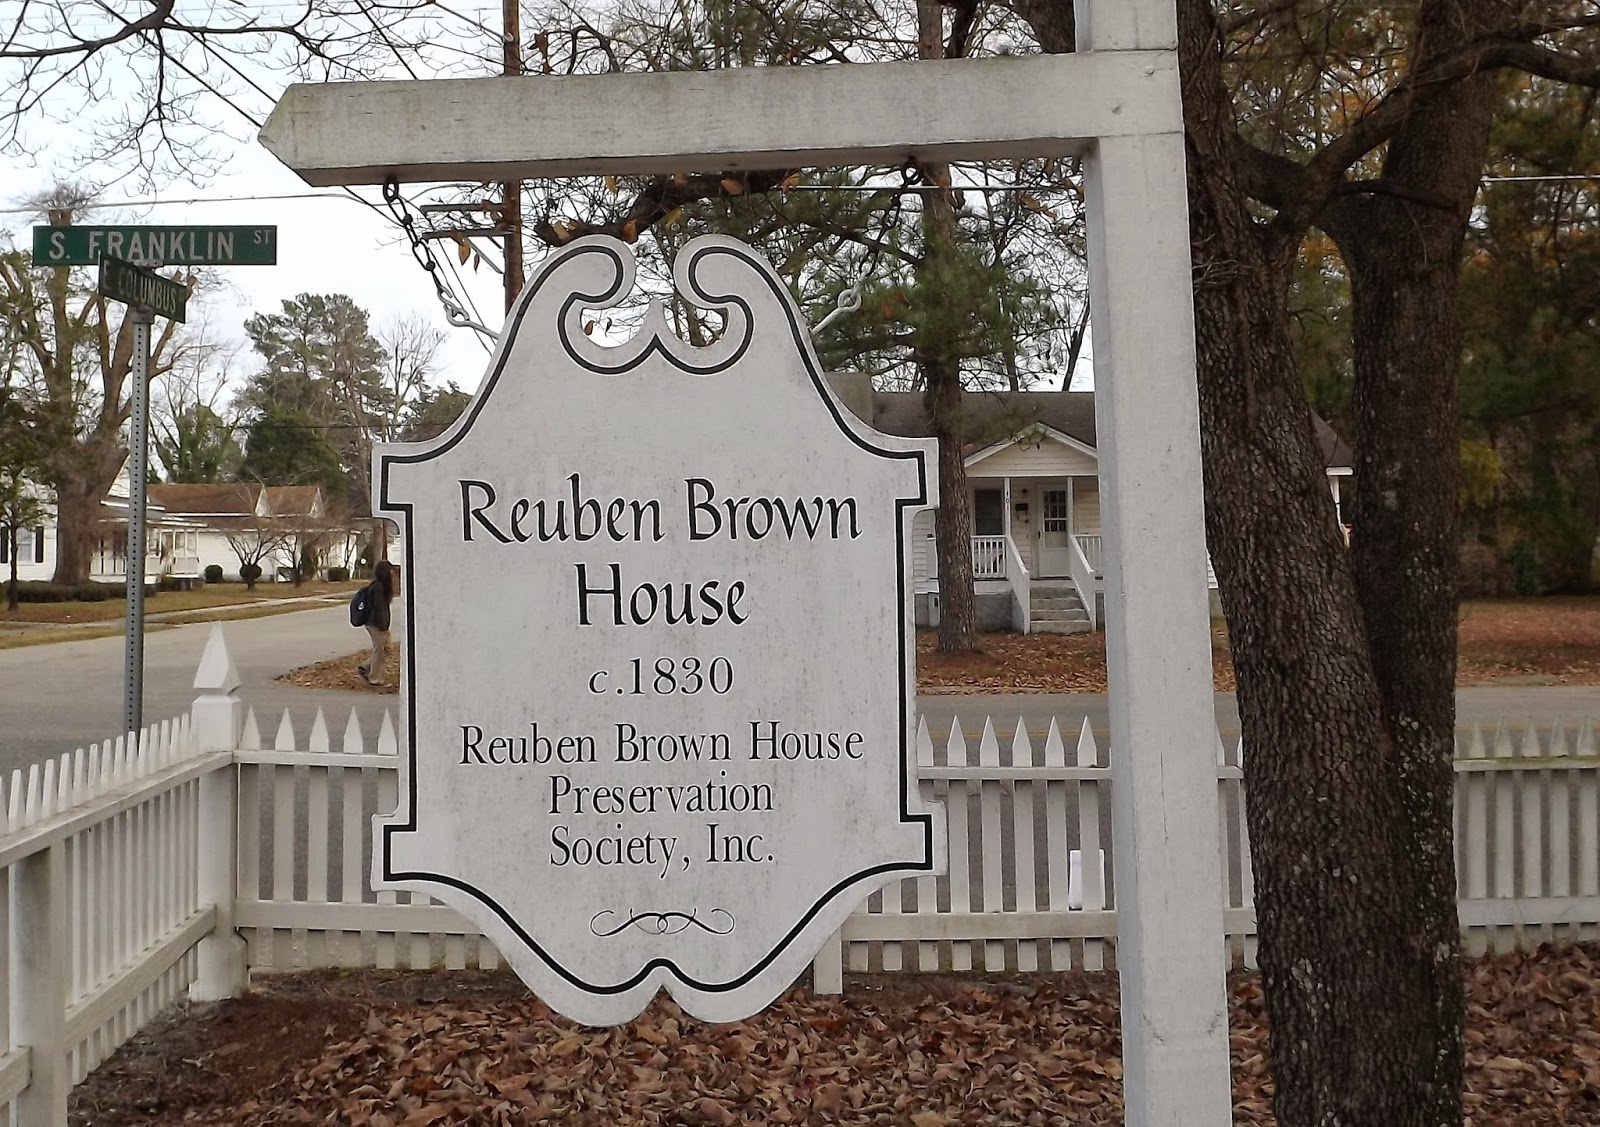 The Reuben Brown House, Whiteville, NC